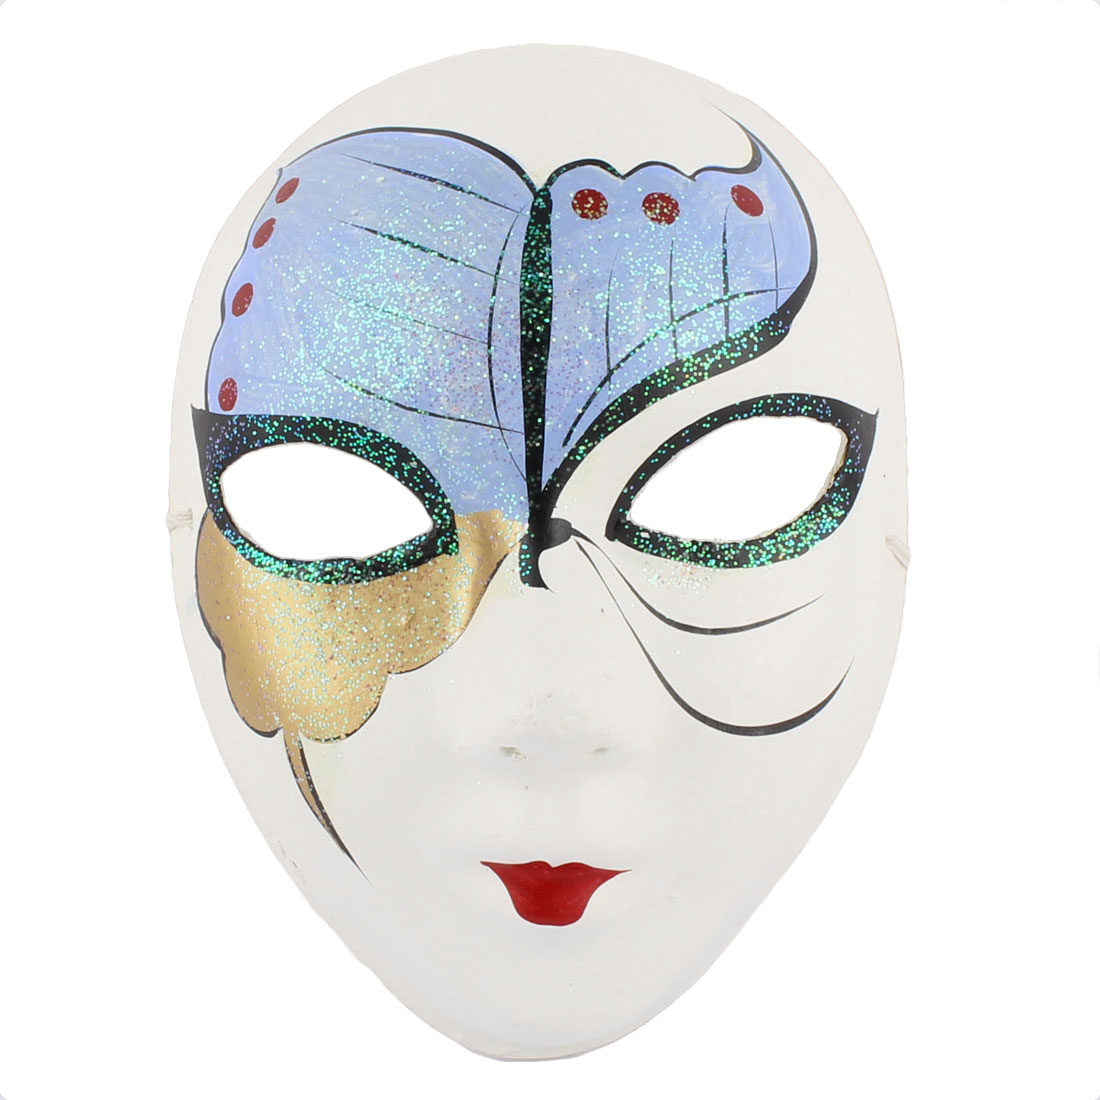 Woman Gypsum Hand Paint Beijing Peking Opera Facial Fashion Costume Makeup Mask Blue